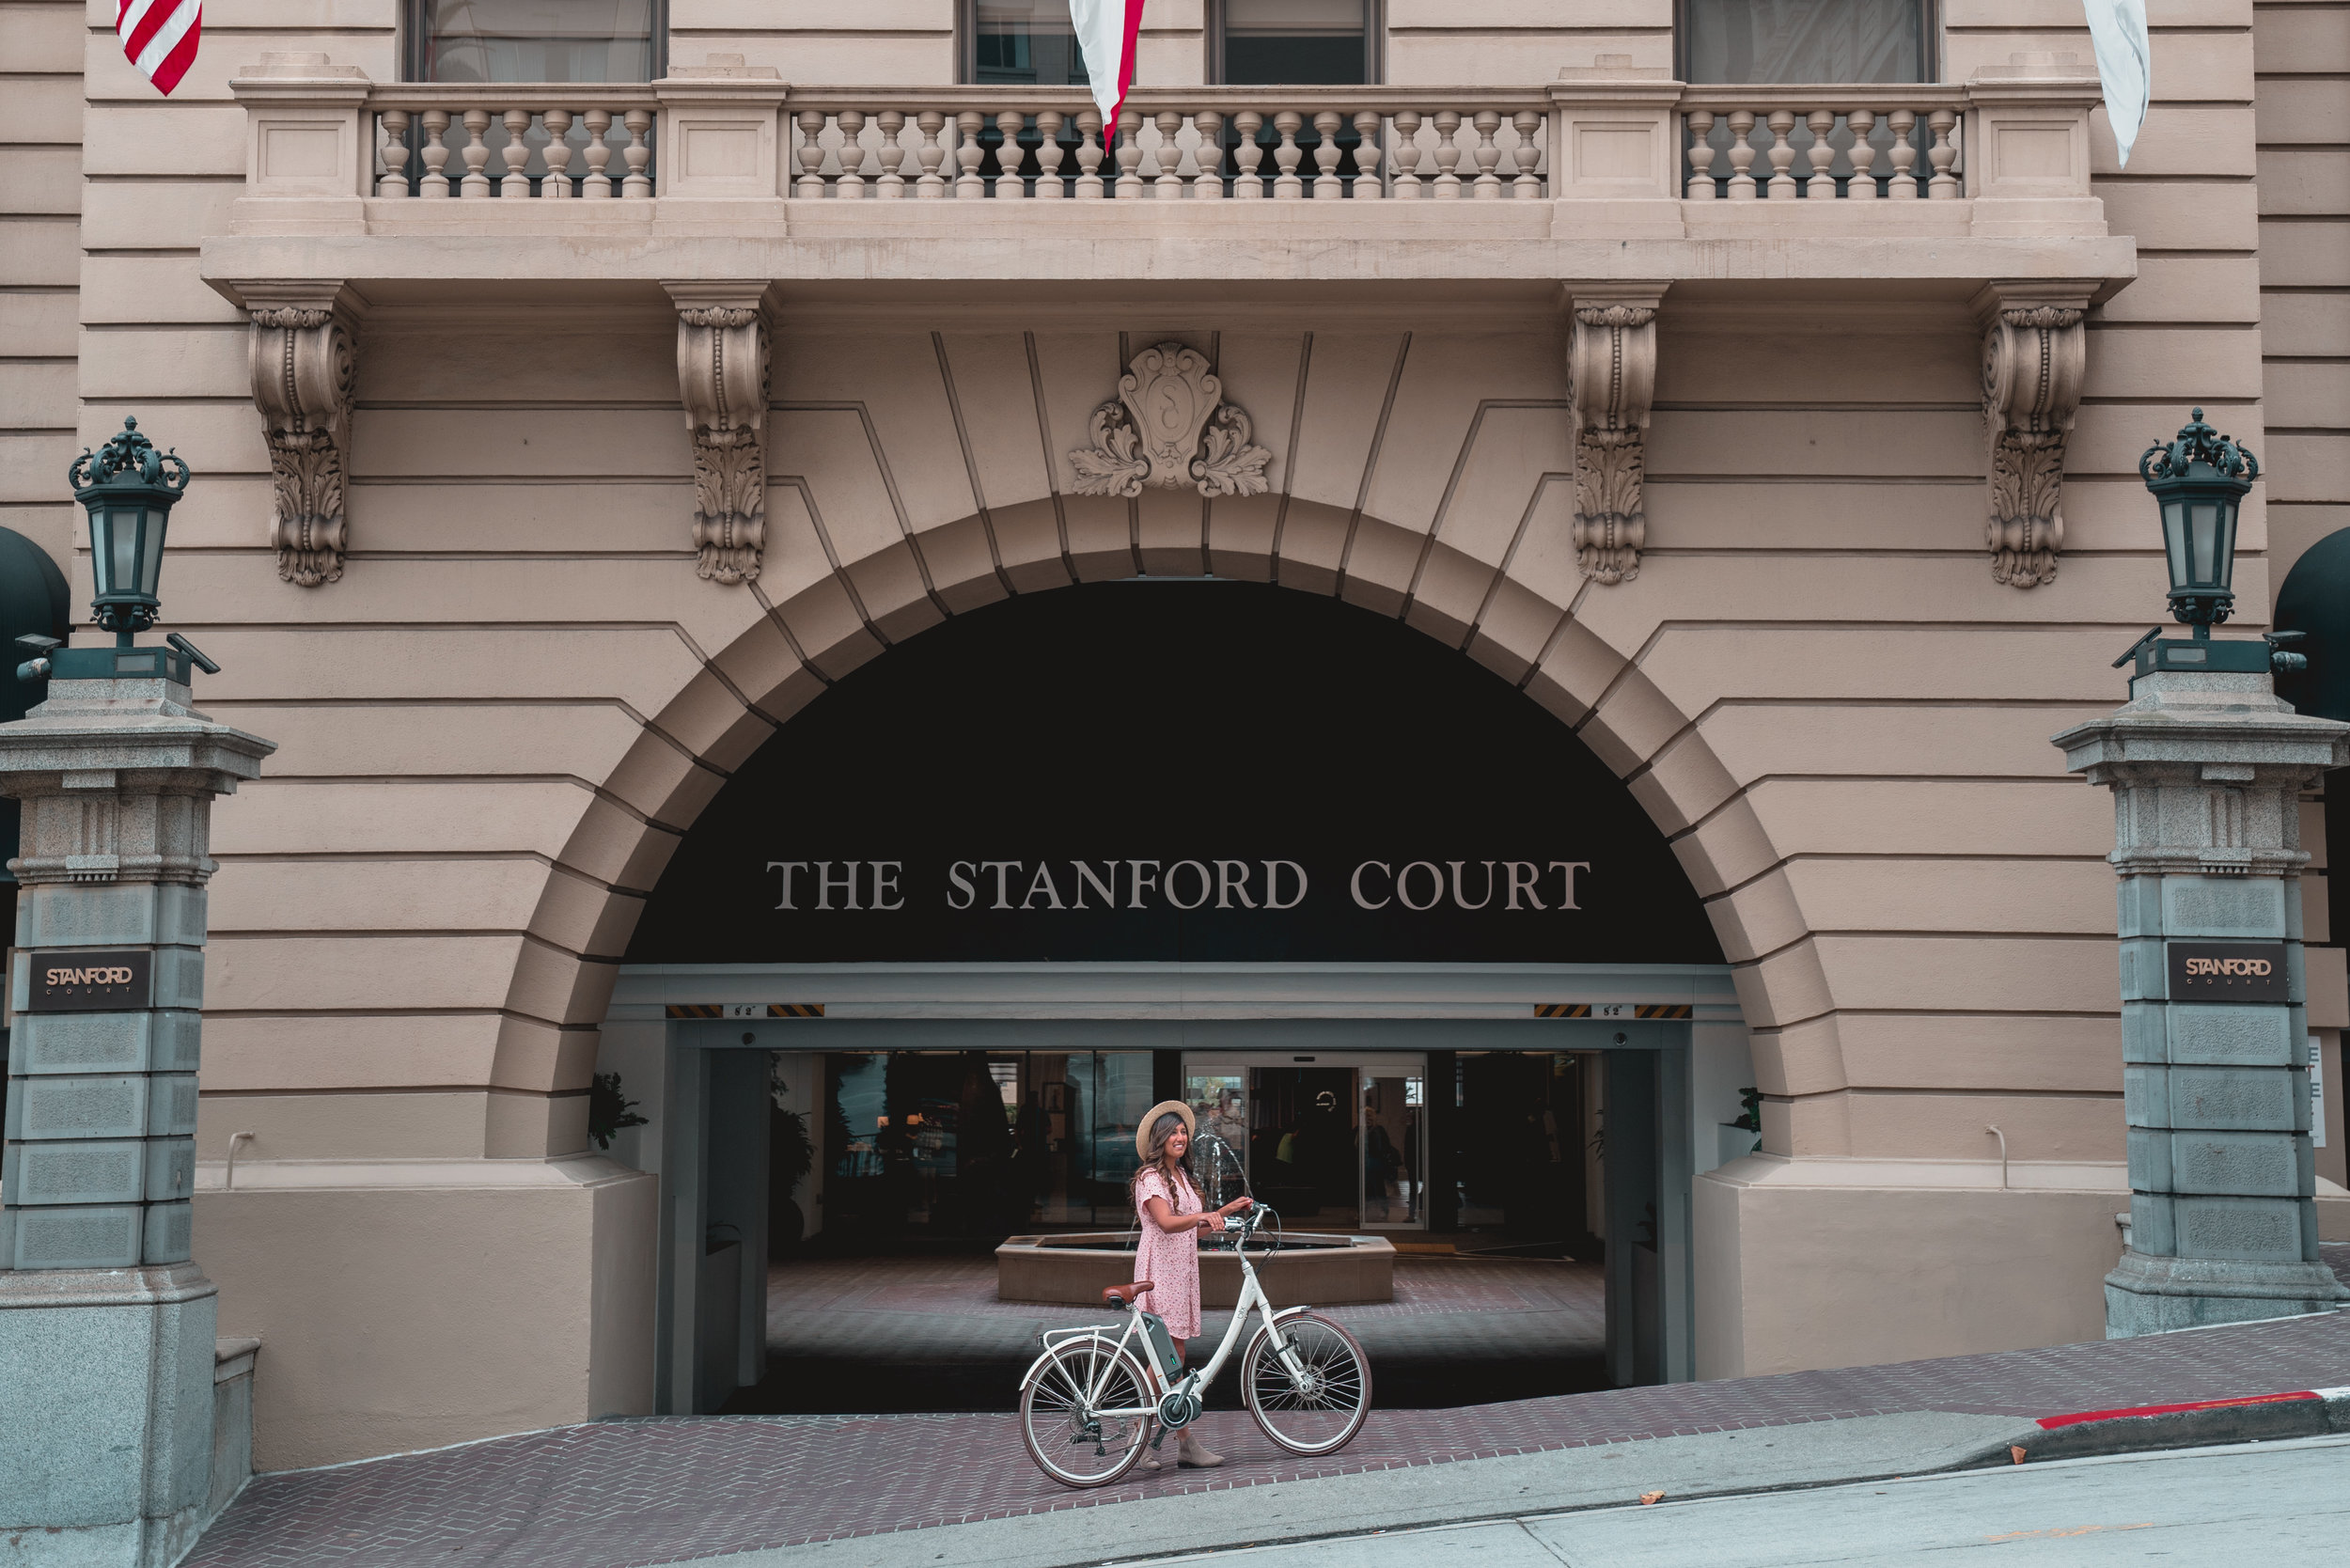 Stanford Court: A Modern Hotel in San Francisco's Nob Hill Neighborhood